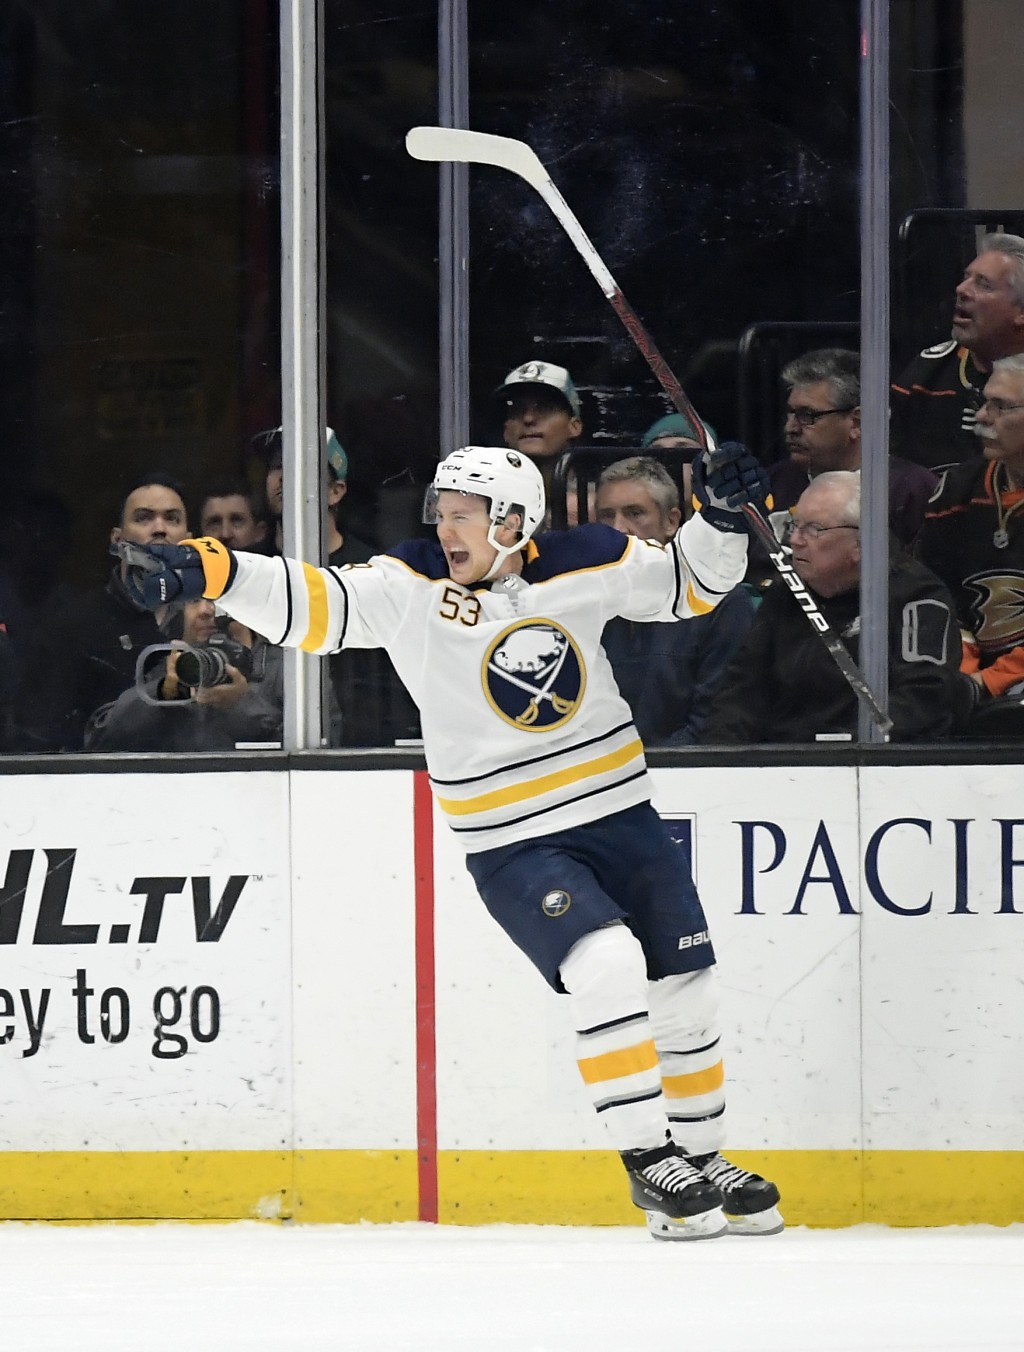 Buffalo Sabres center Jeff Skinner celebrates his goal during the second period of an NHL hockey game against the Anaheim Ducks Sunday, Oct. 21, 2018,...